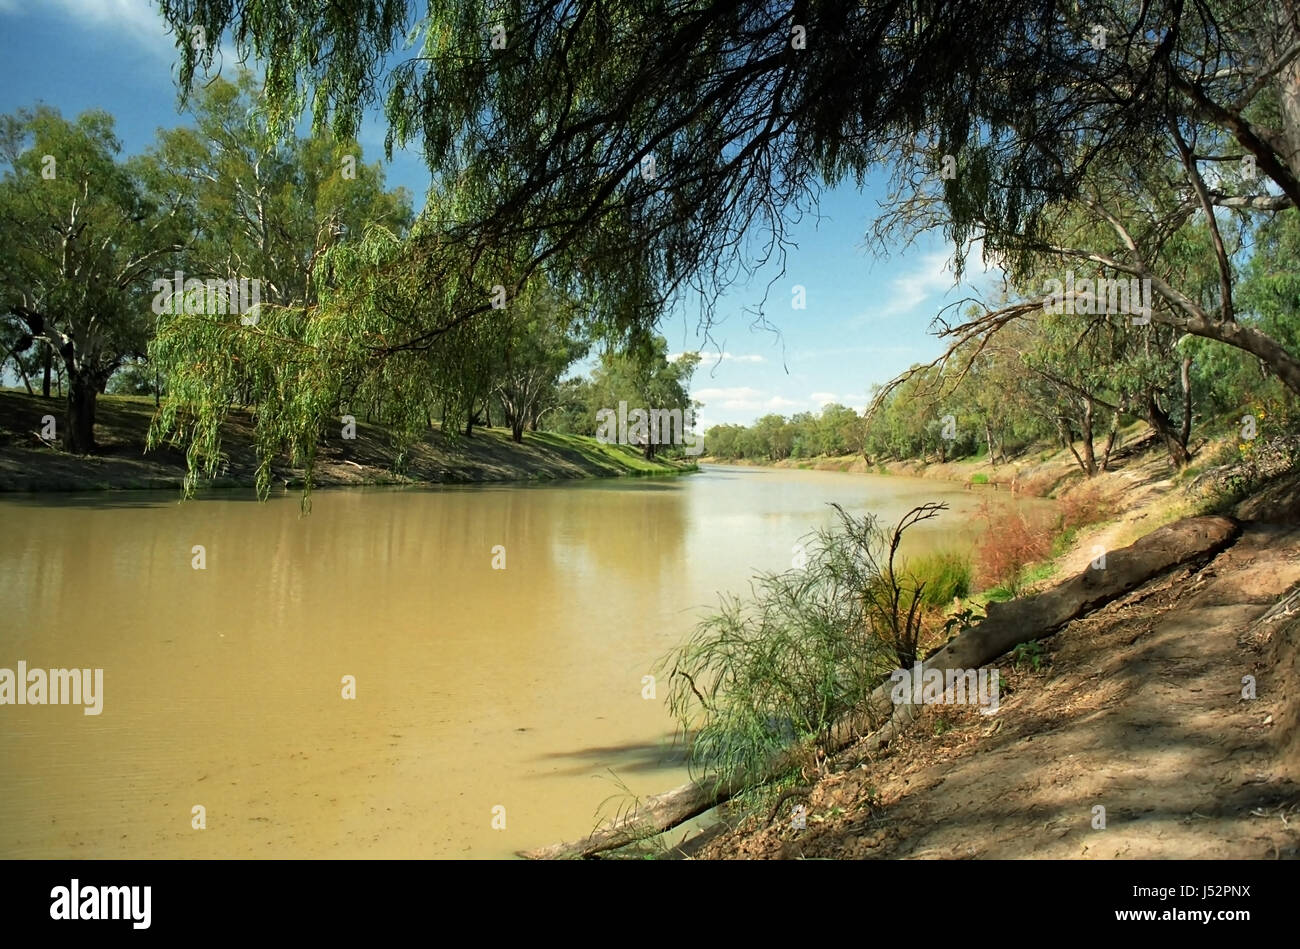 The Darling River at Bourke, New South Wales, Australia: the river before the droughts and over-exploitation affected - Stock Image